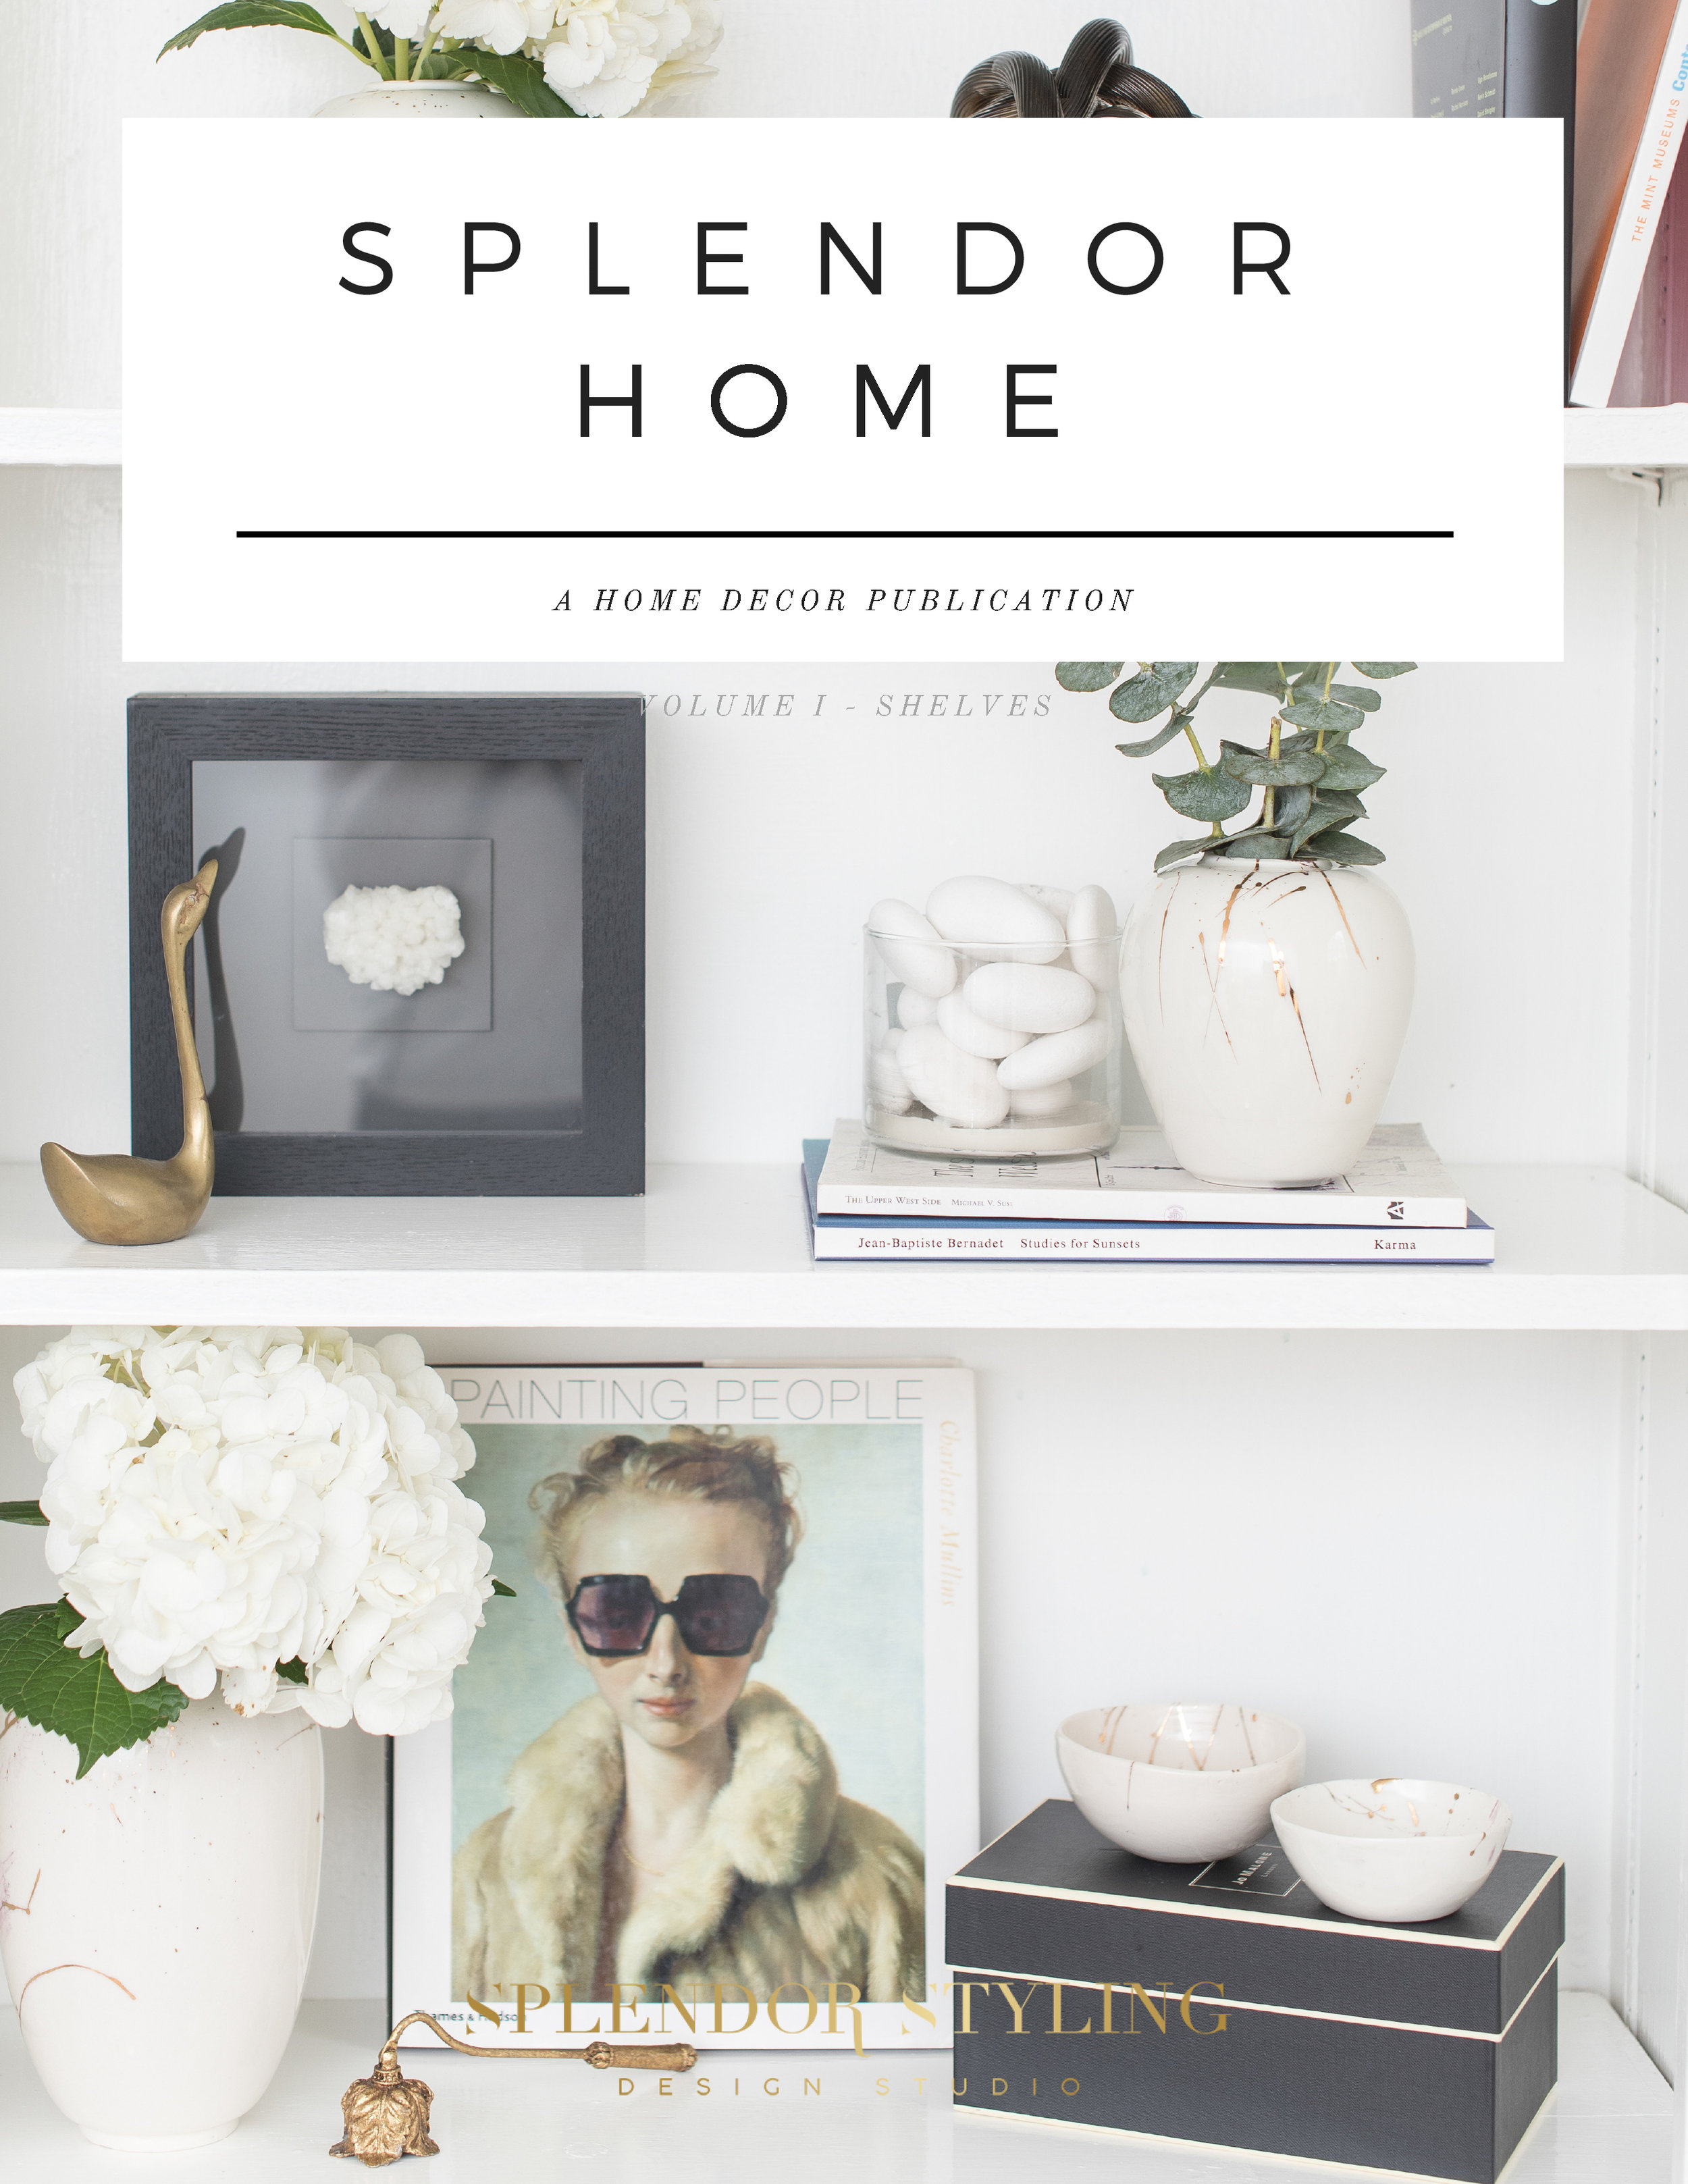 splendor-home-how-to-guide-decor-how-to-style-shelves-to-perfection-how-to-decorate-shelves-splendor-styling